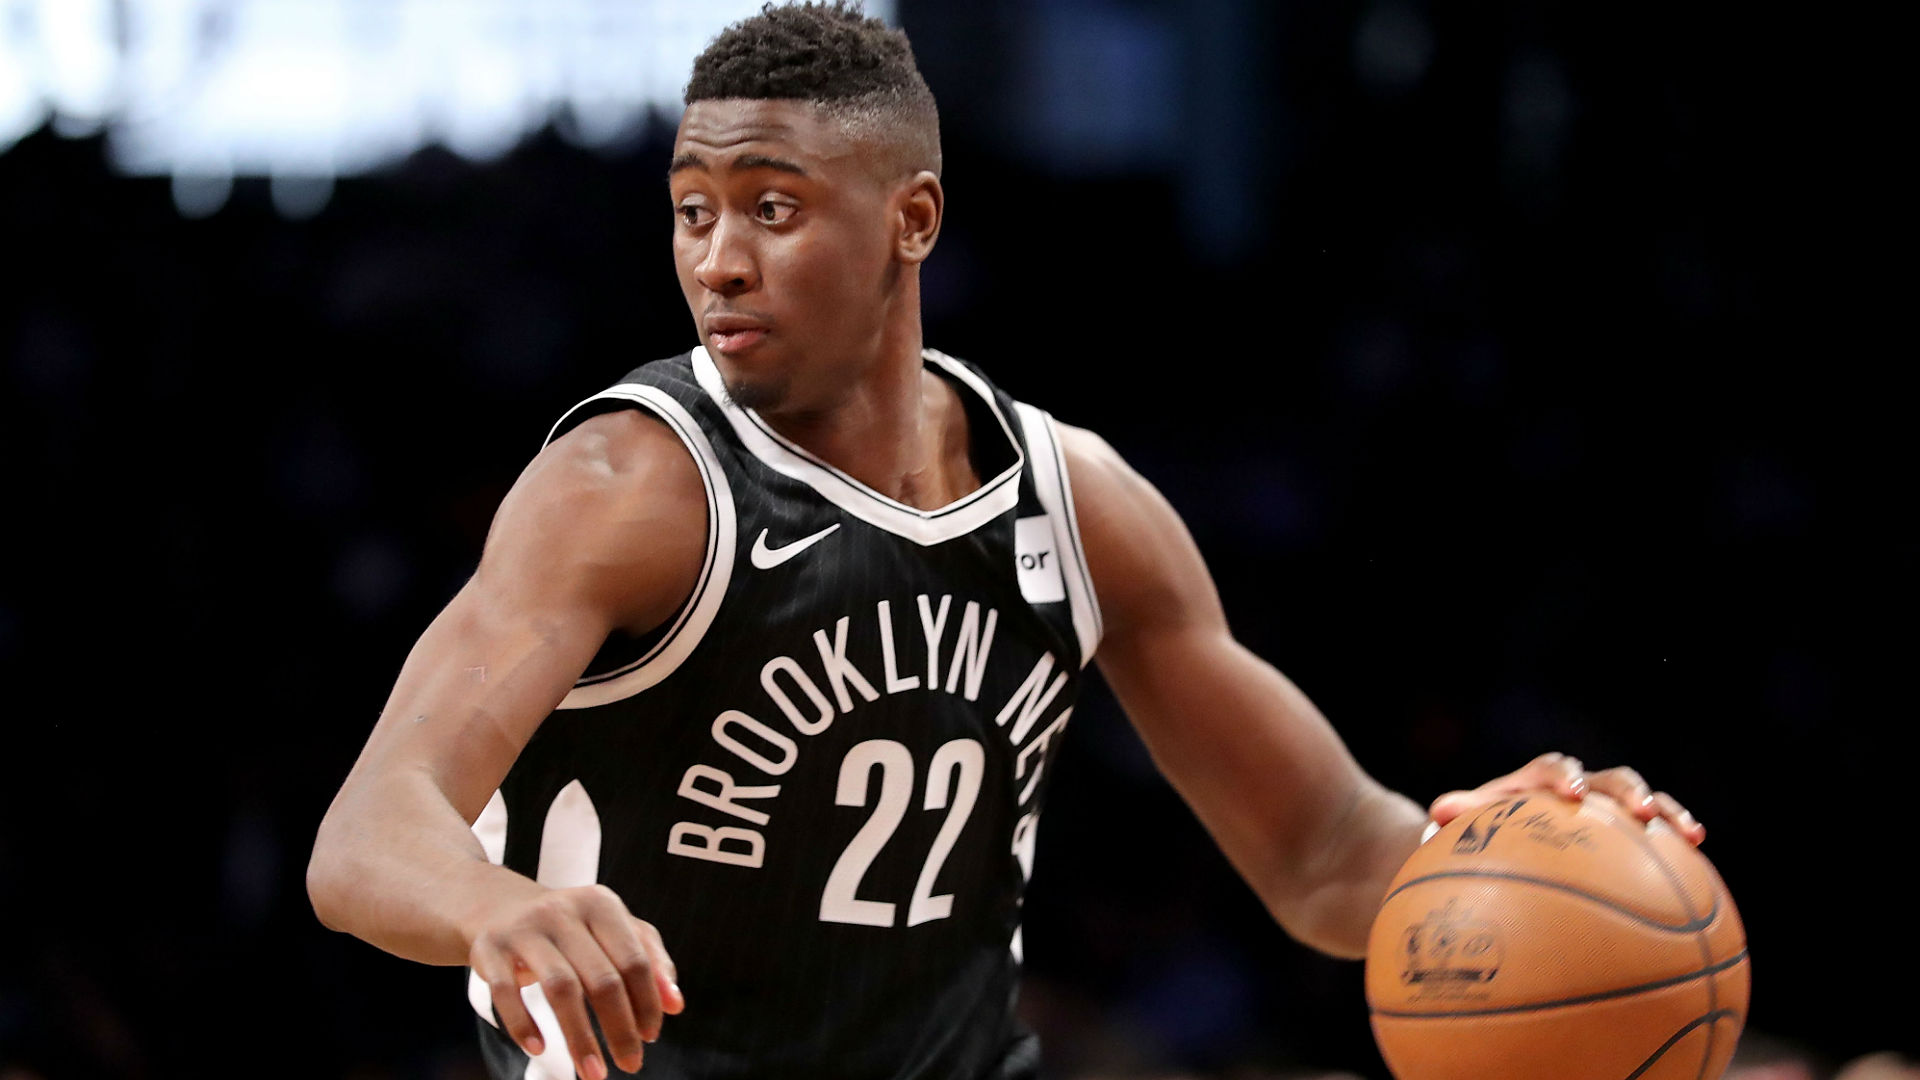 Nets say LeVert could return from foot injury this season